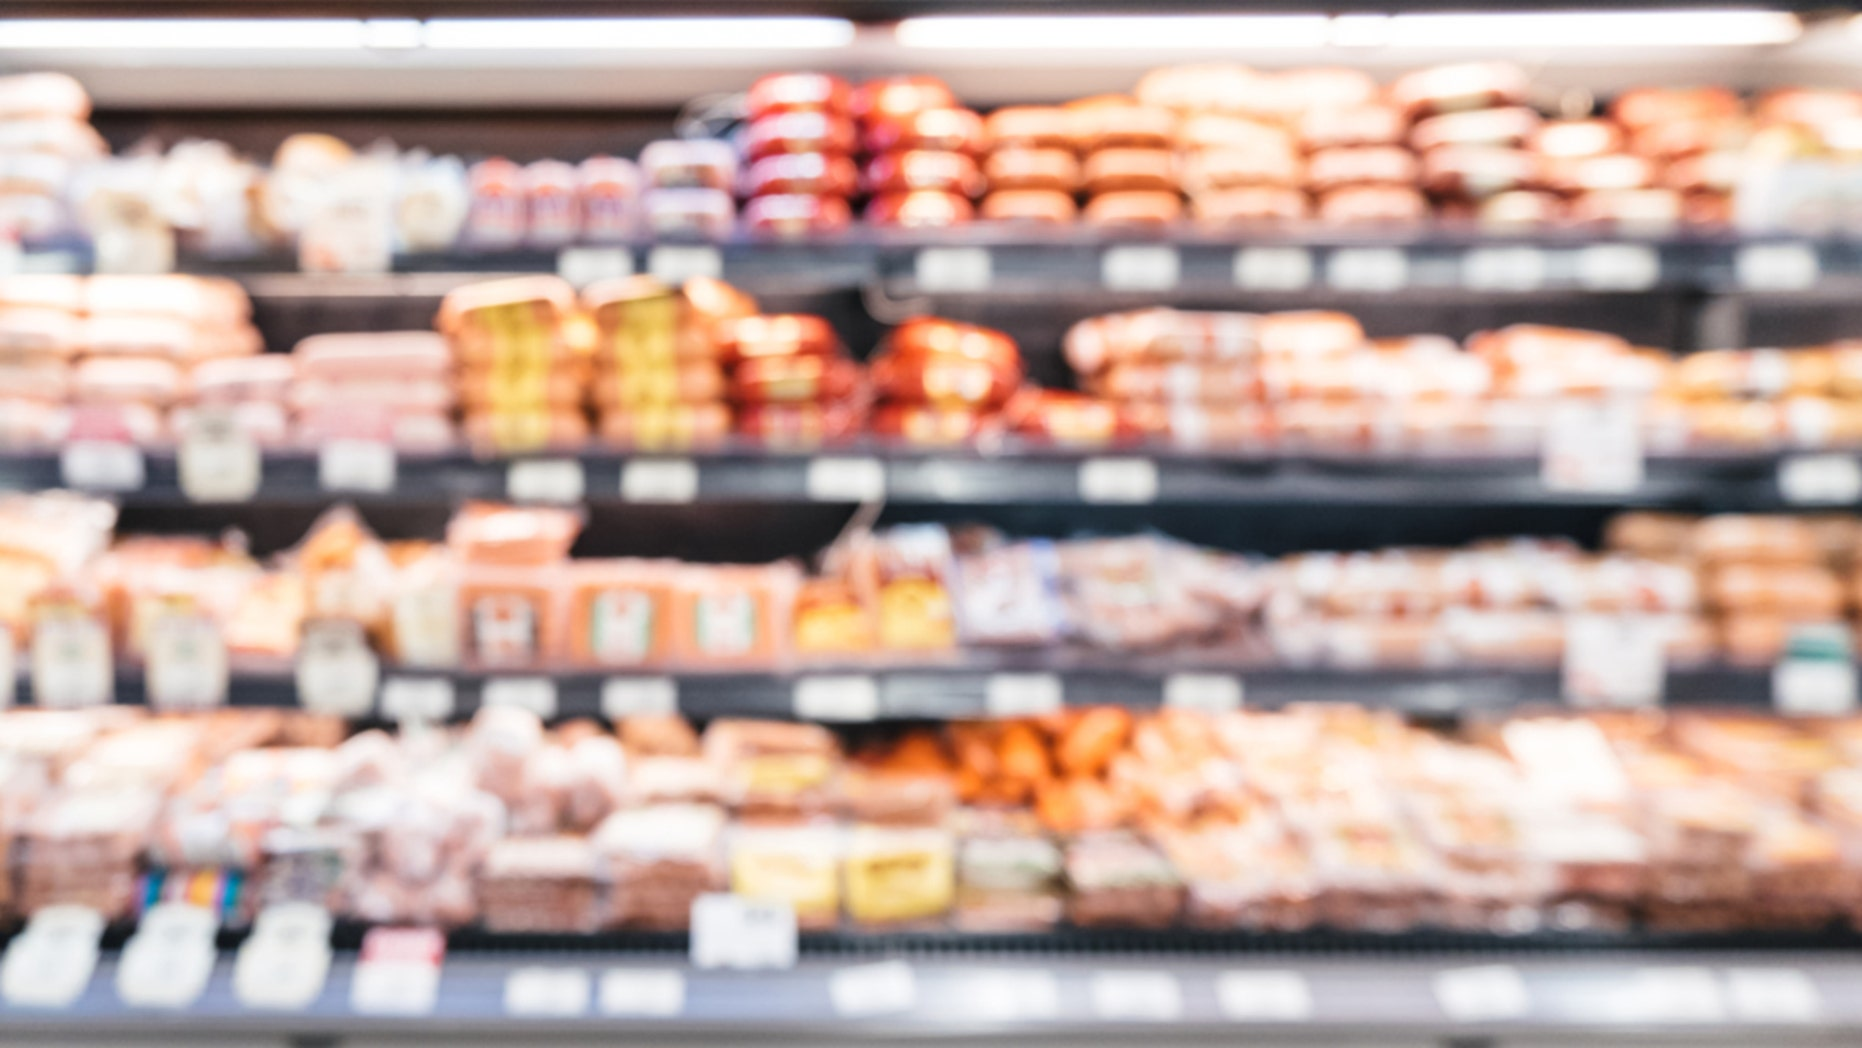 Four people have been infected with a strain of listeria monocytogenes in North Carolina and Virginia.